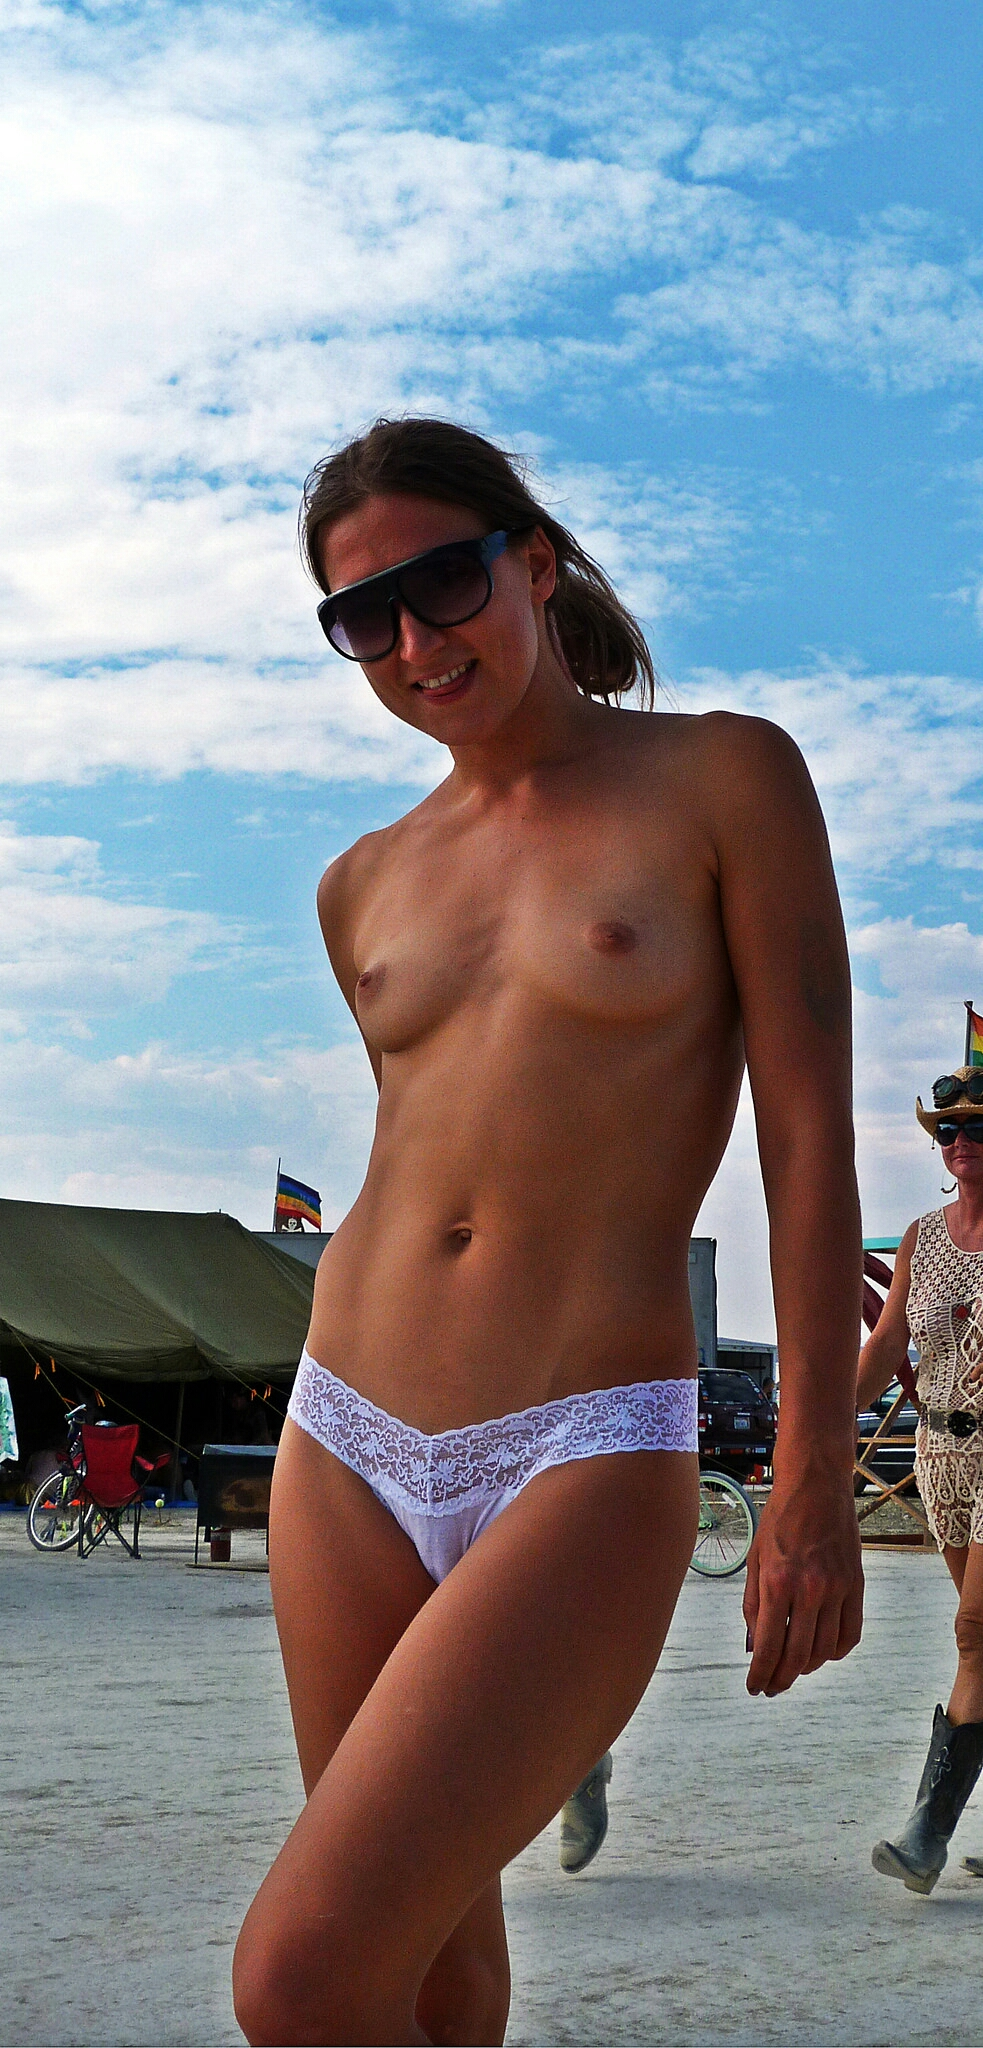 Just panties and sunglasses.